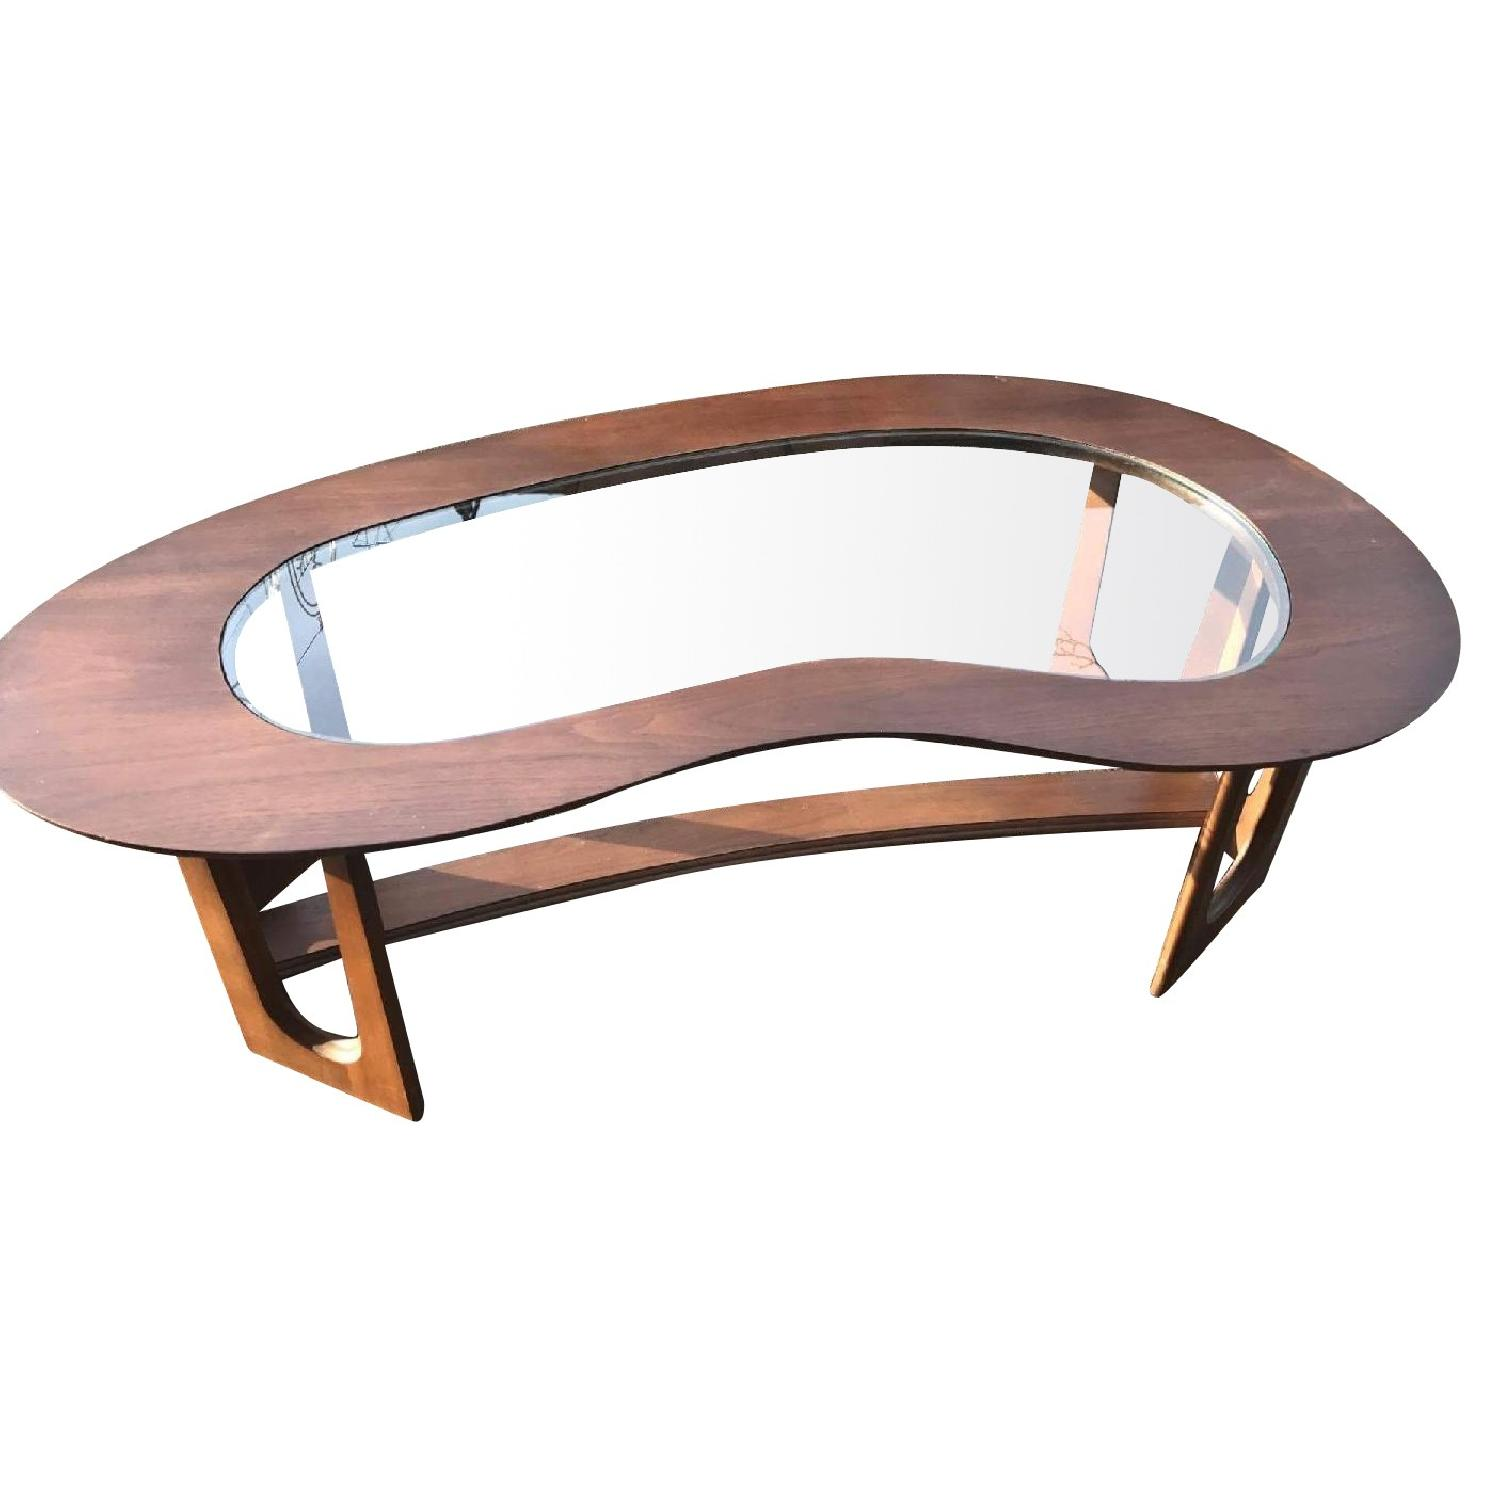 1960s Kidney Shaped Coffee Table w/ Center Glass Top